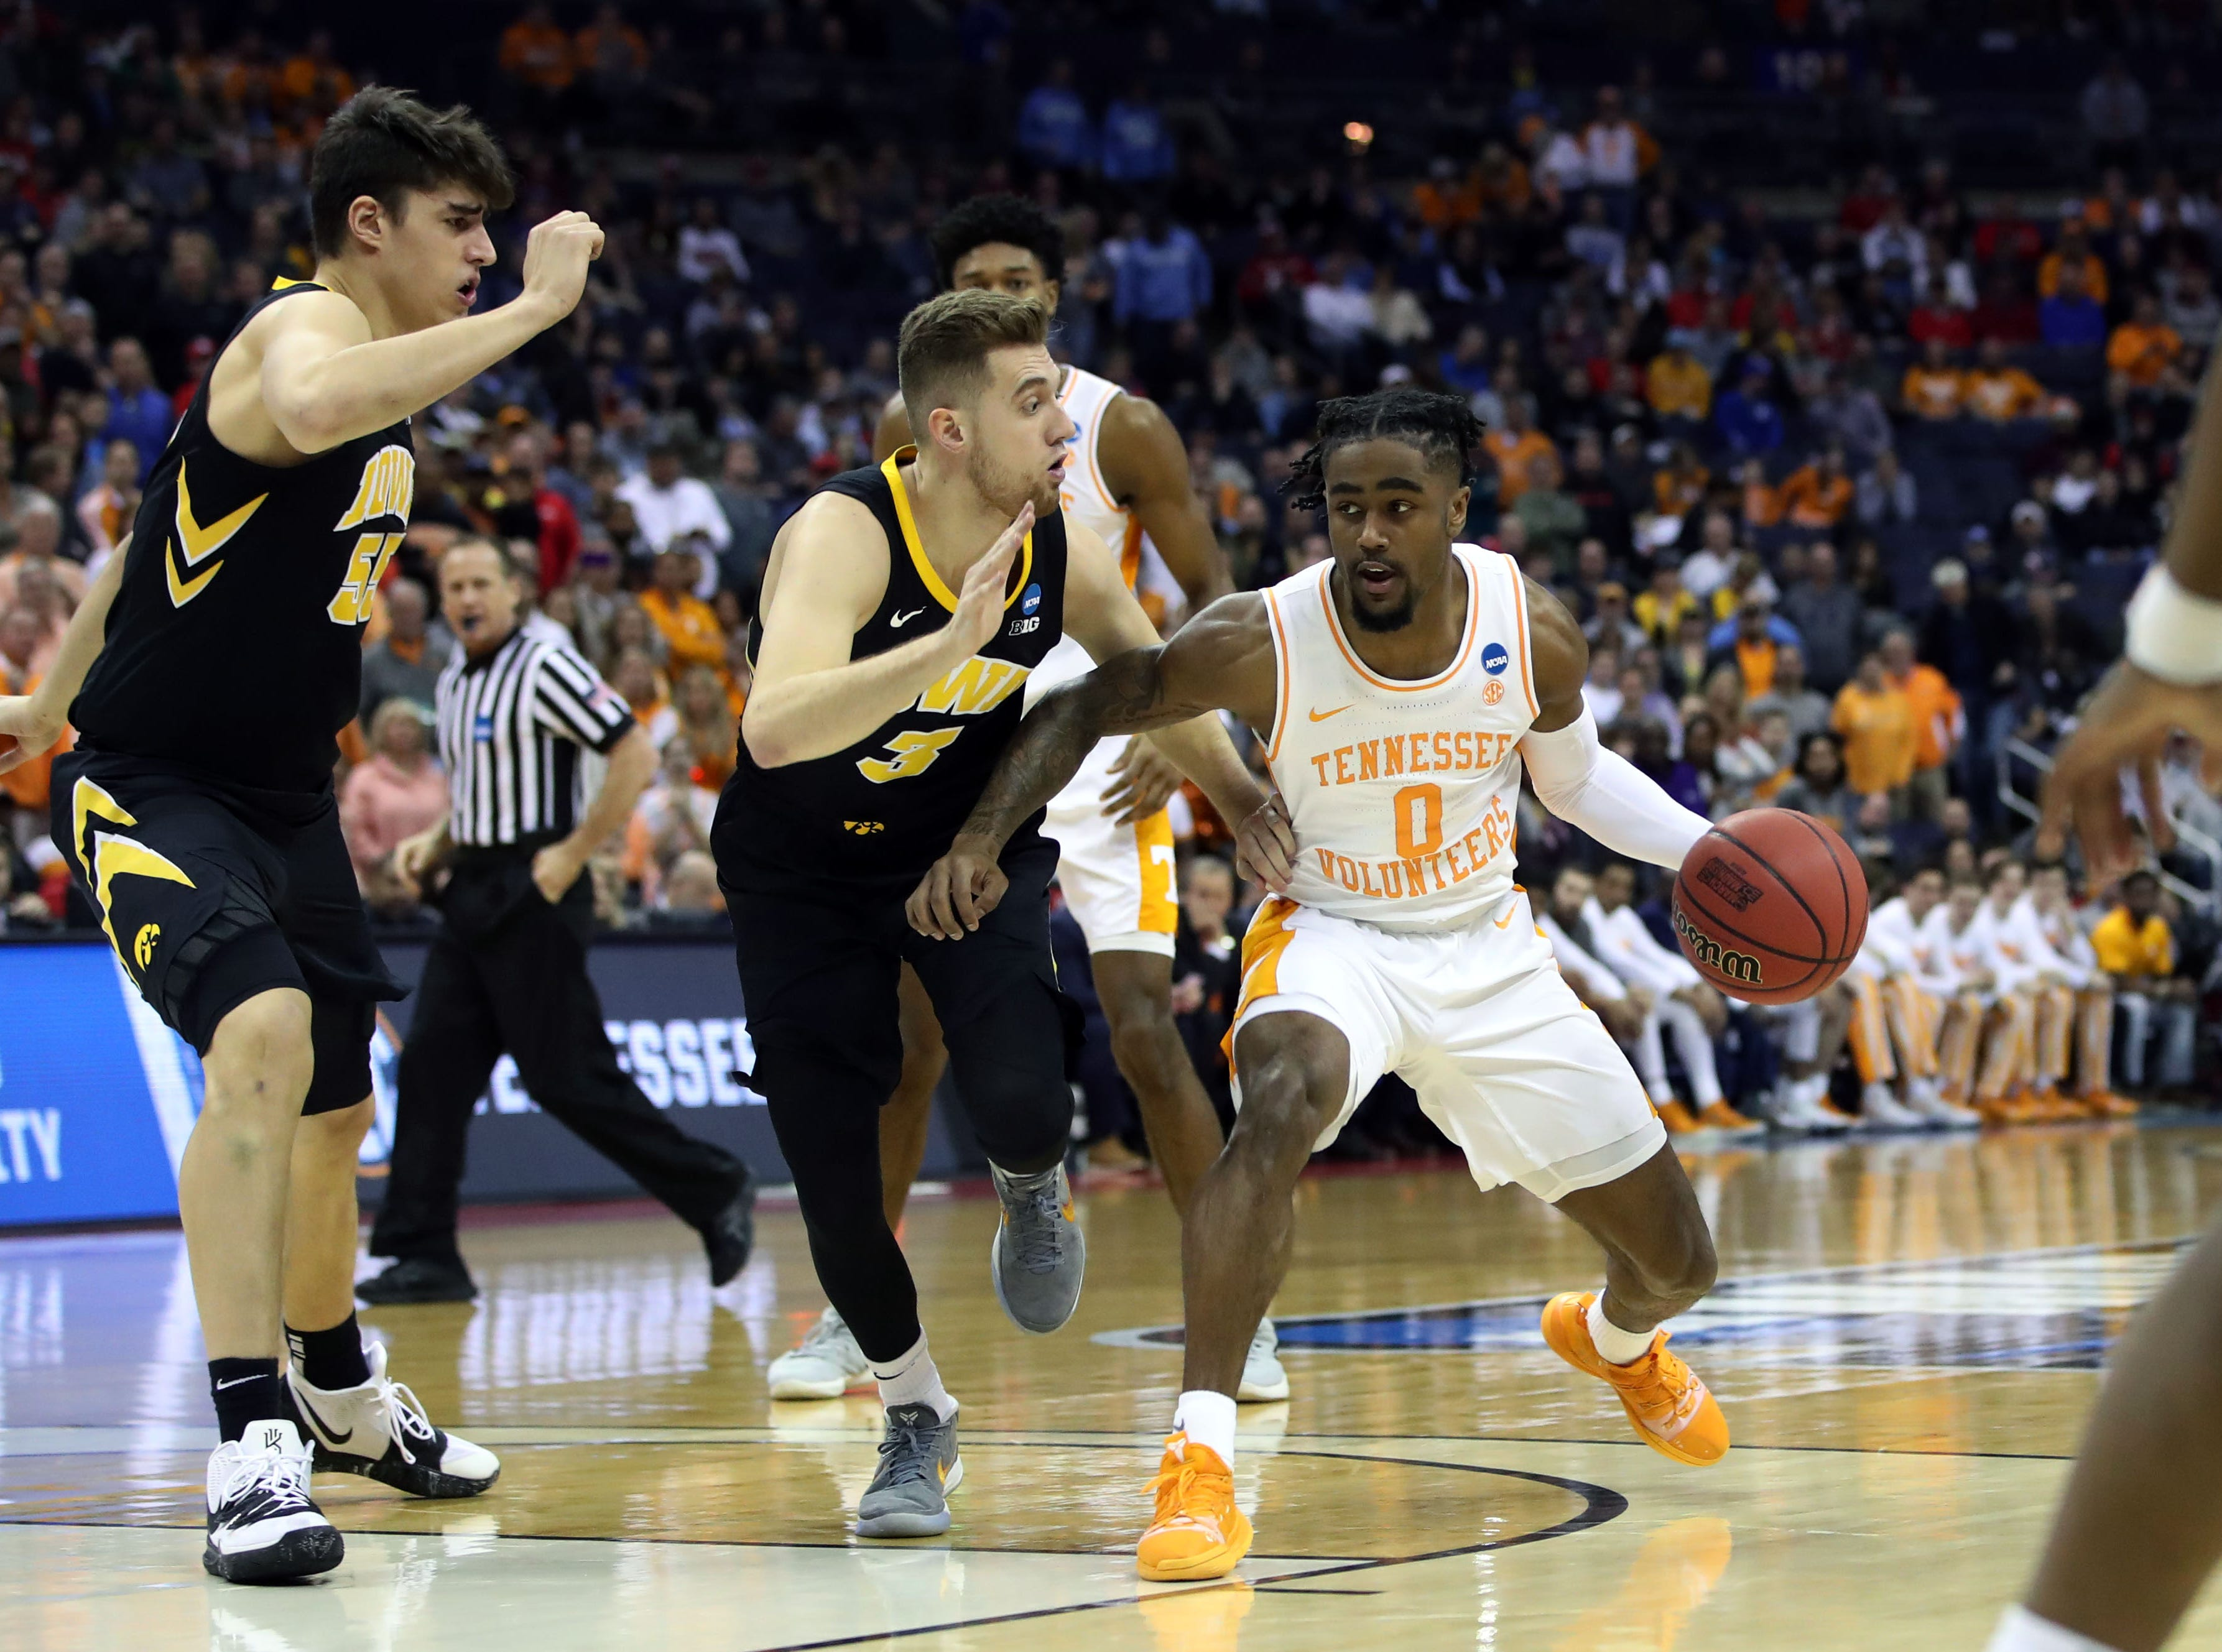 Tennessee Volunteers guard Jordan Bone (0) moves down court defended by Iowa Hawkeyes guard Jordan Bohannon (3) in the first half in the second round of the 2019 NCAA Tournament at Nationwide Arena.